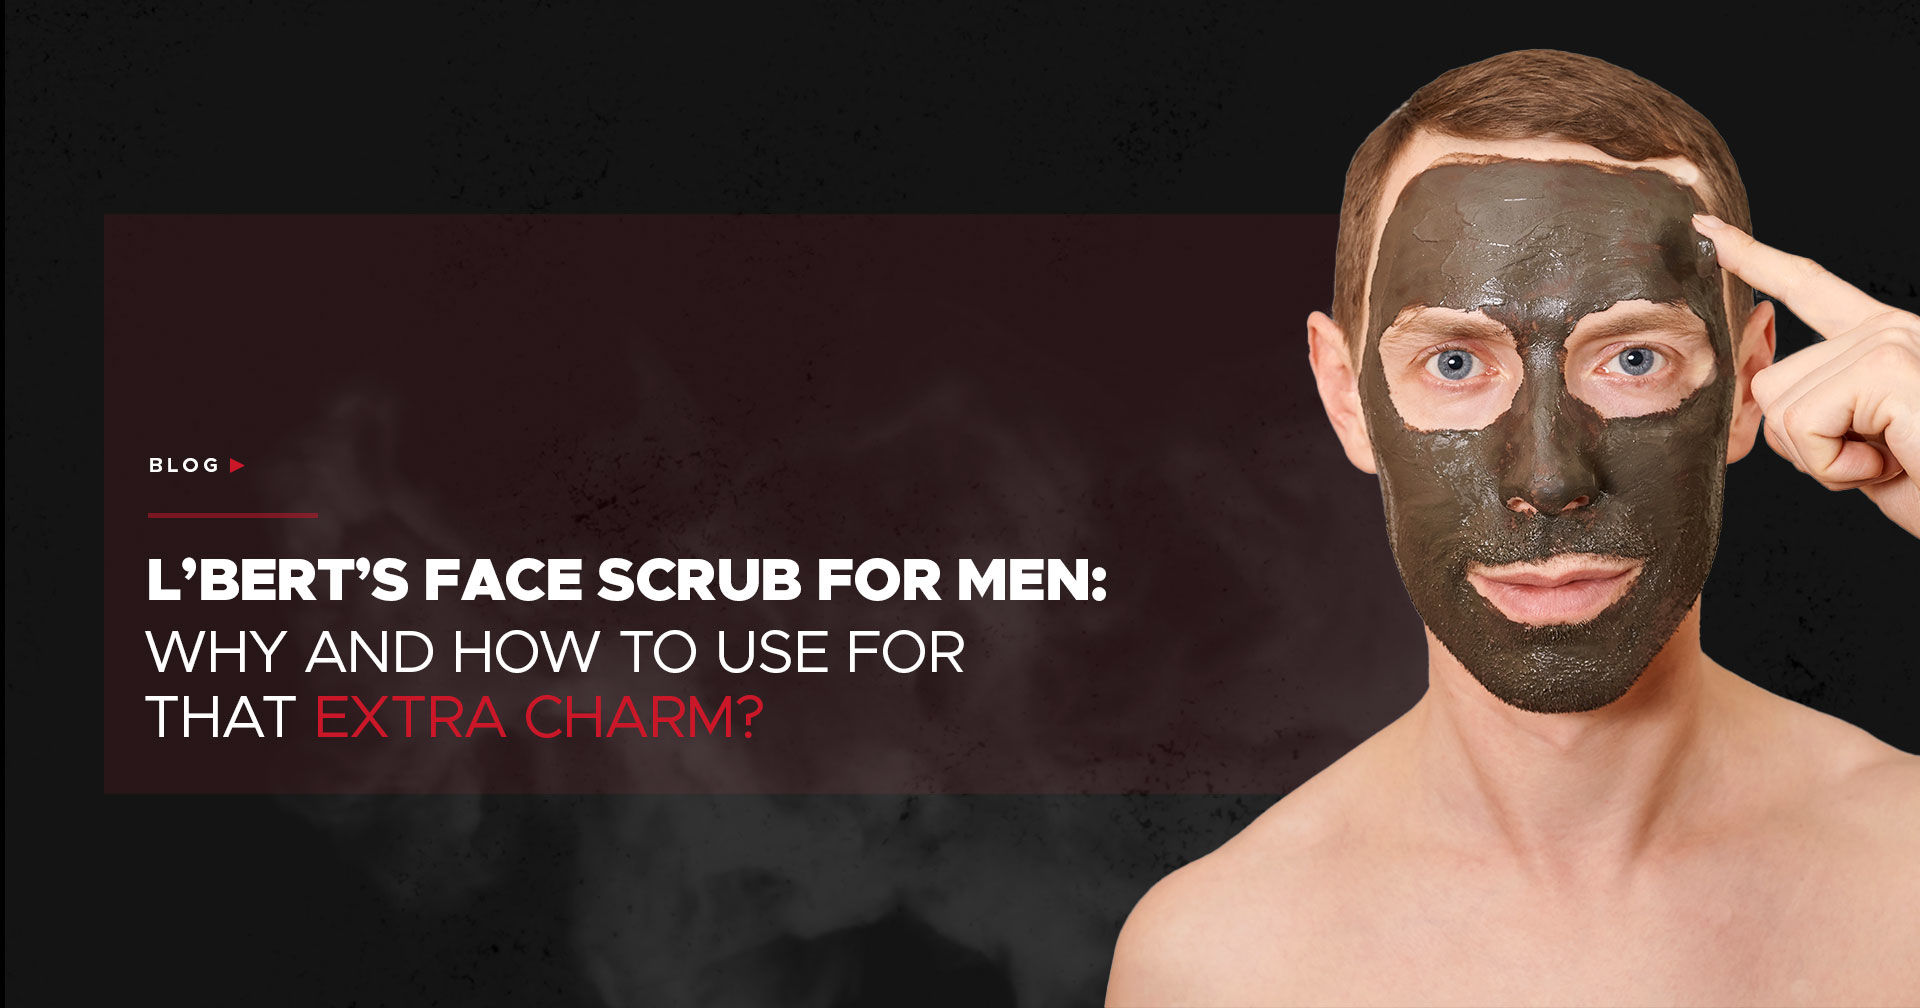 L'BERT's Face Scrub for Men: Why and How to Use for That Extra Charm?